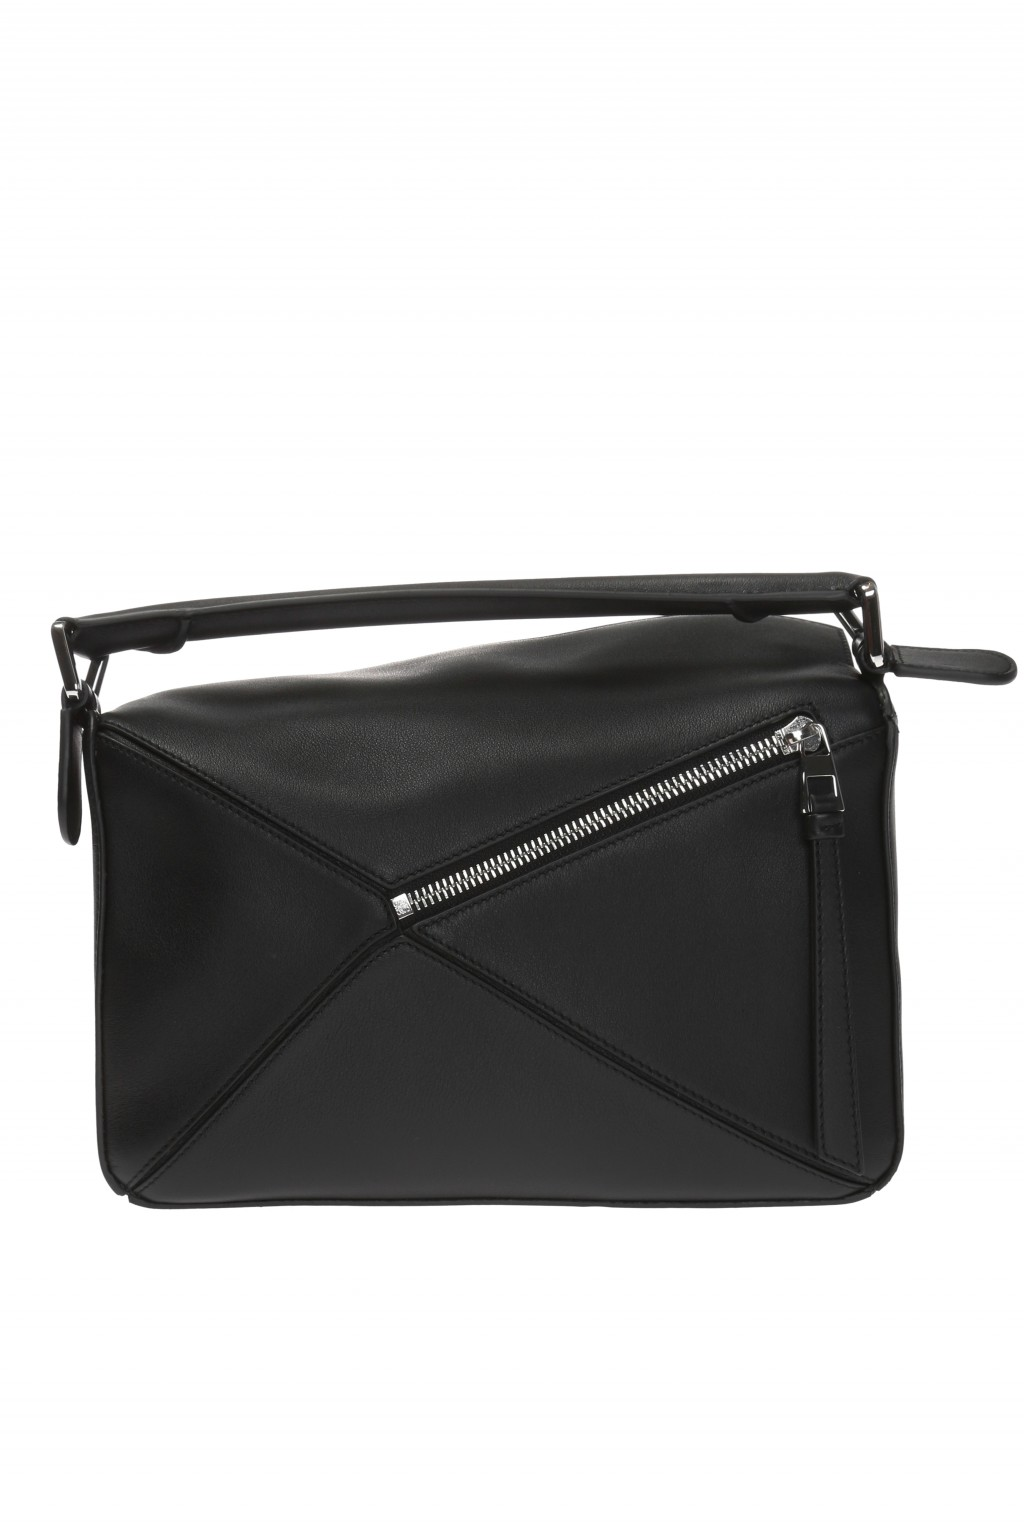 Loewe 'Puzzle Small' shoulder bag